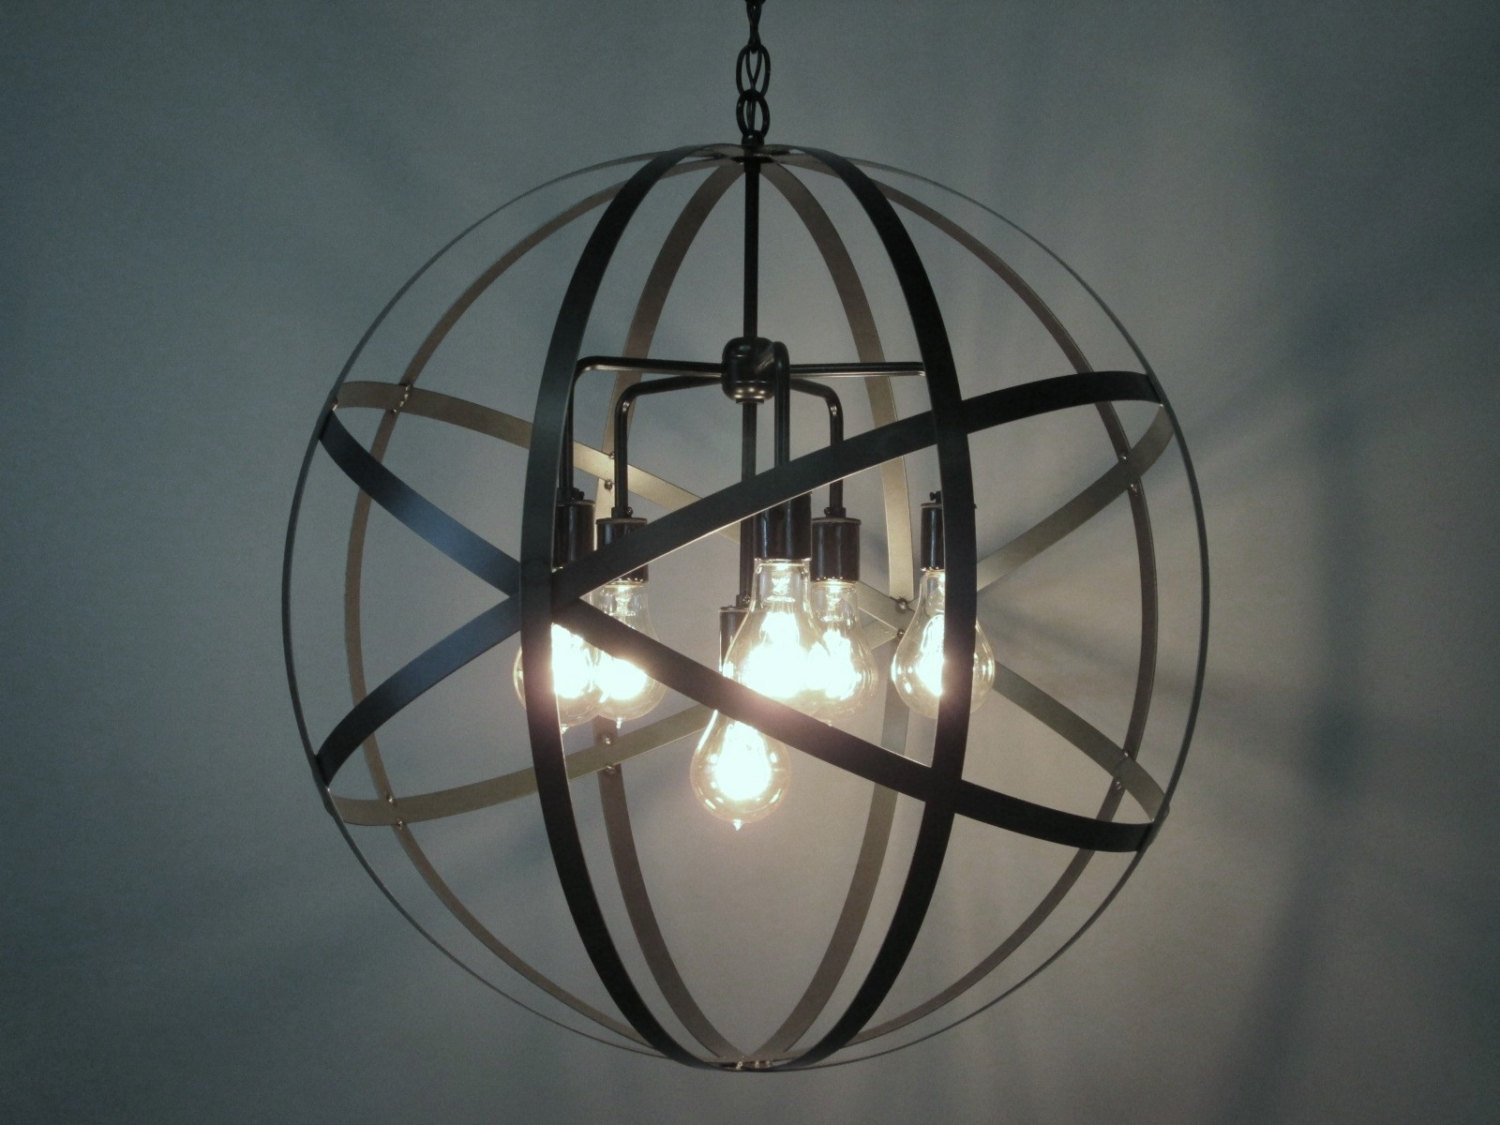 Decor Sphere Chandelier Is One Of The Best Light Fixture And For Sphere Chandelier (#8 of 12)